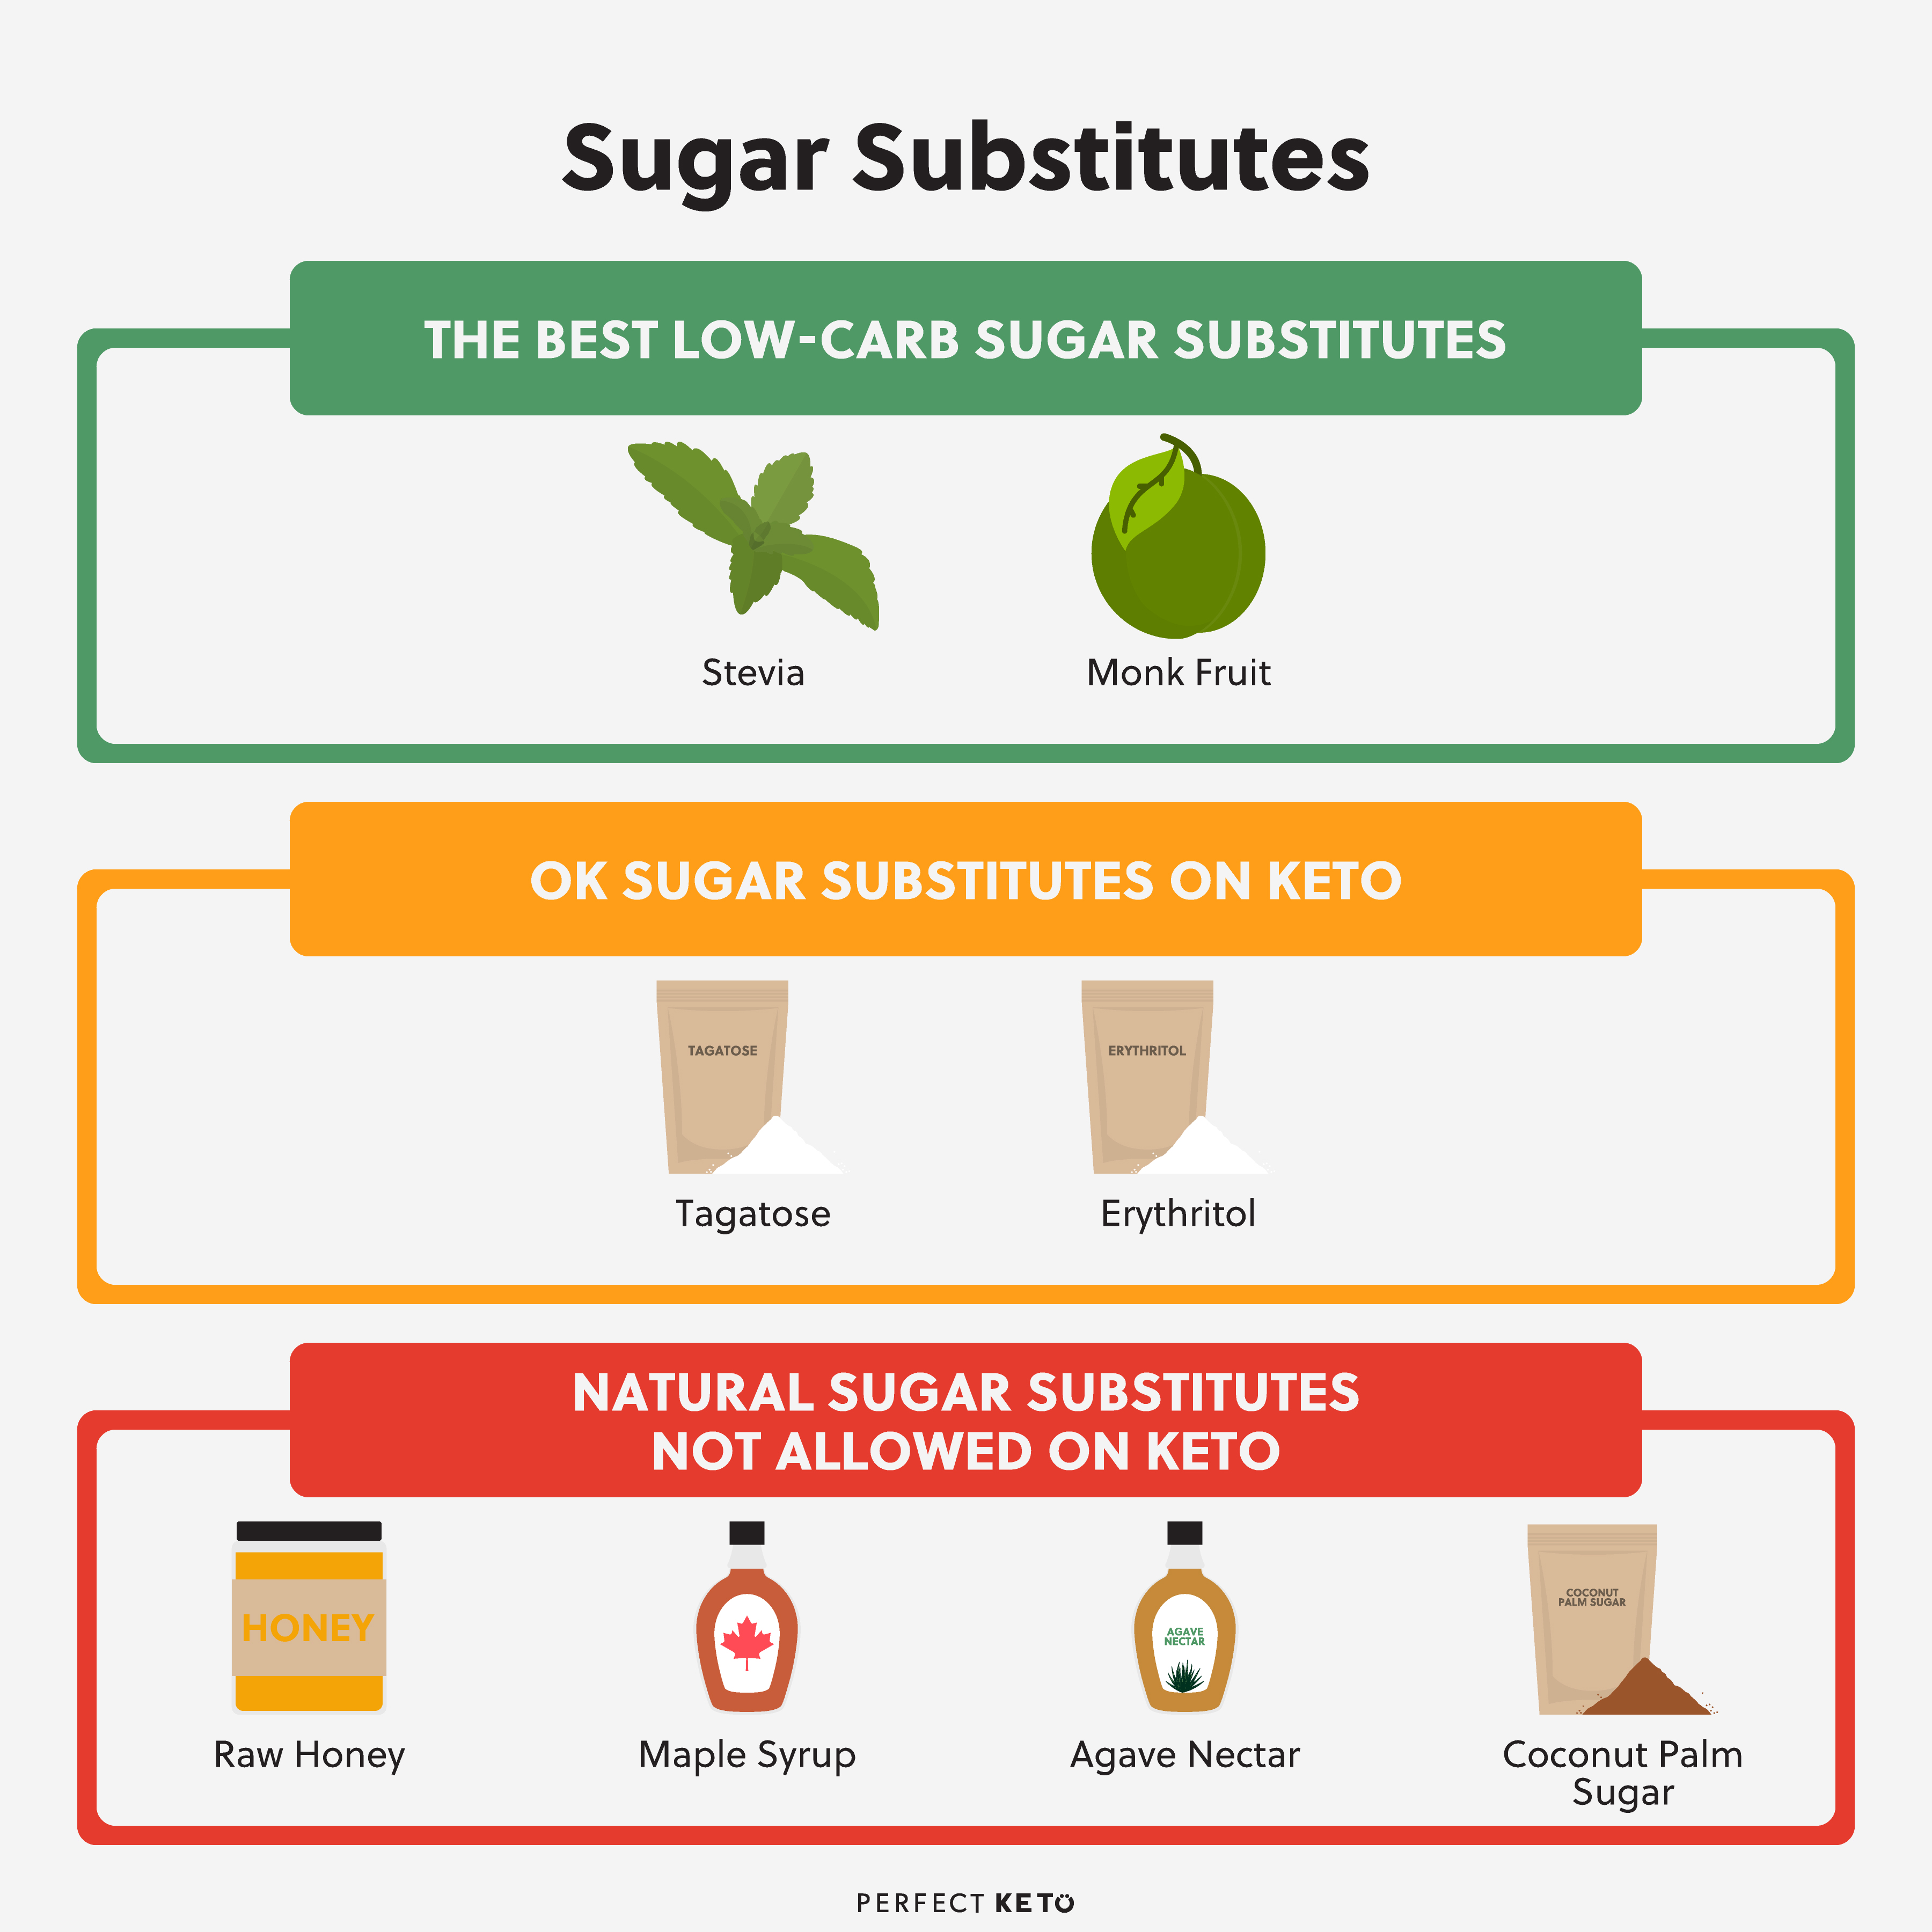 is sucralose acceptable on a ketogenic diet